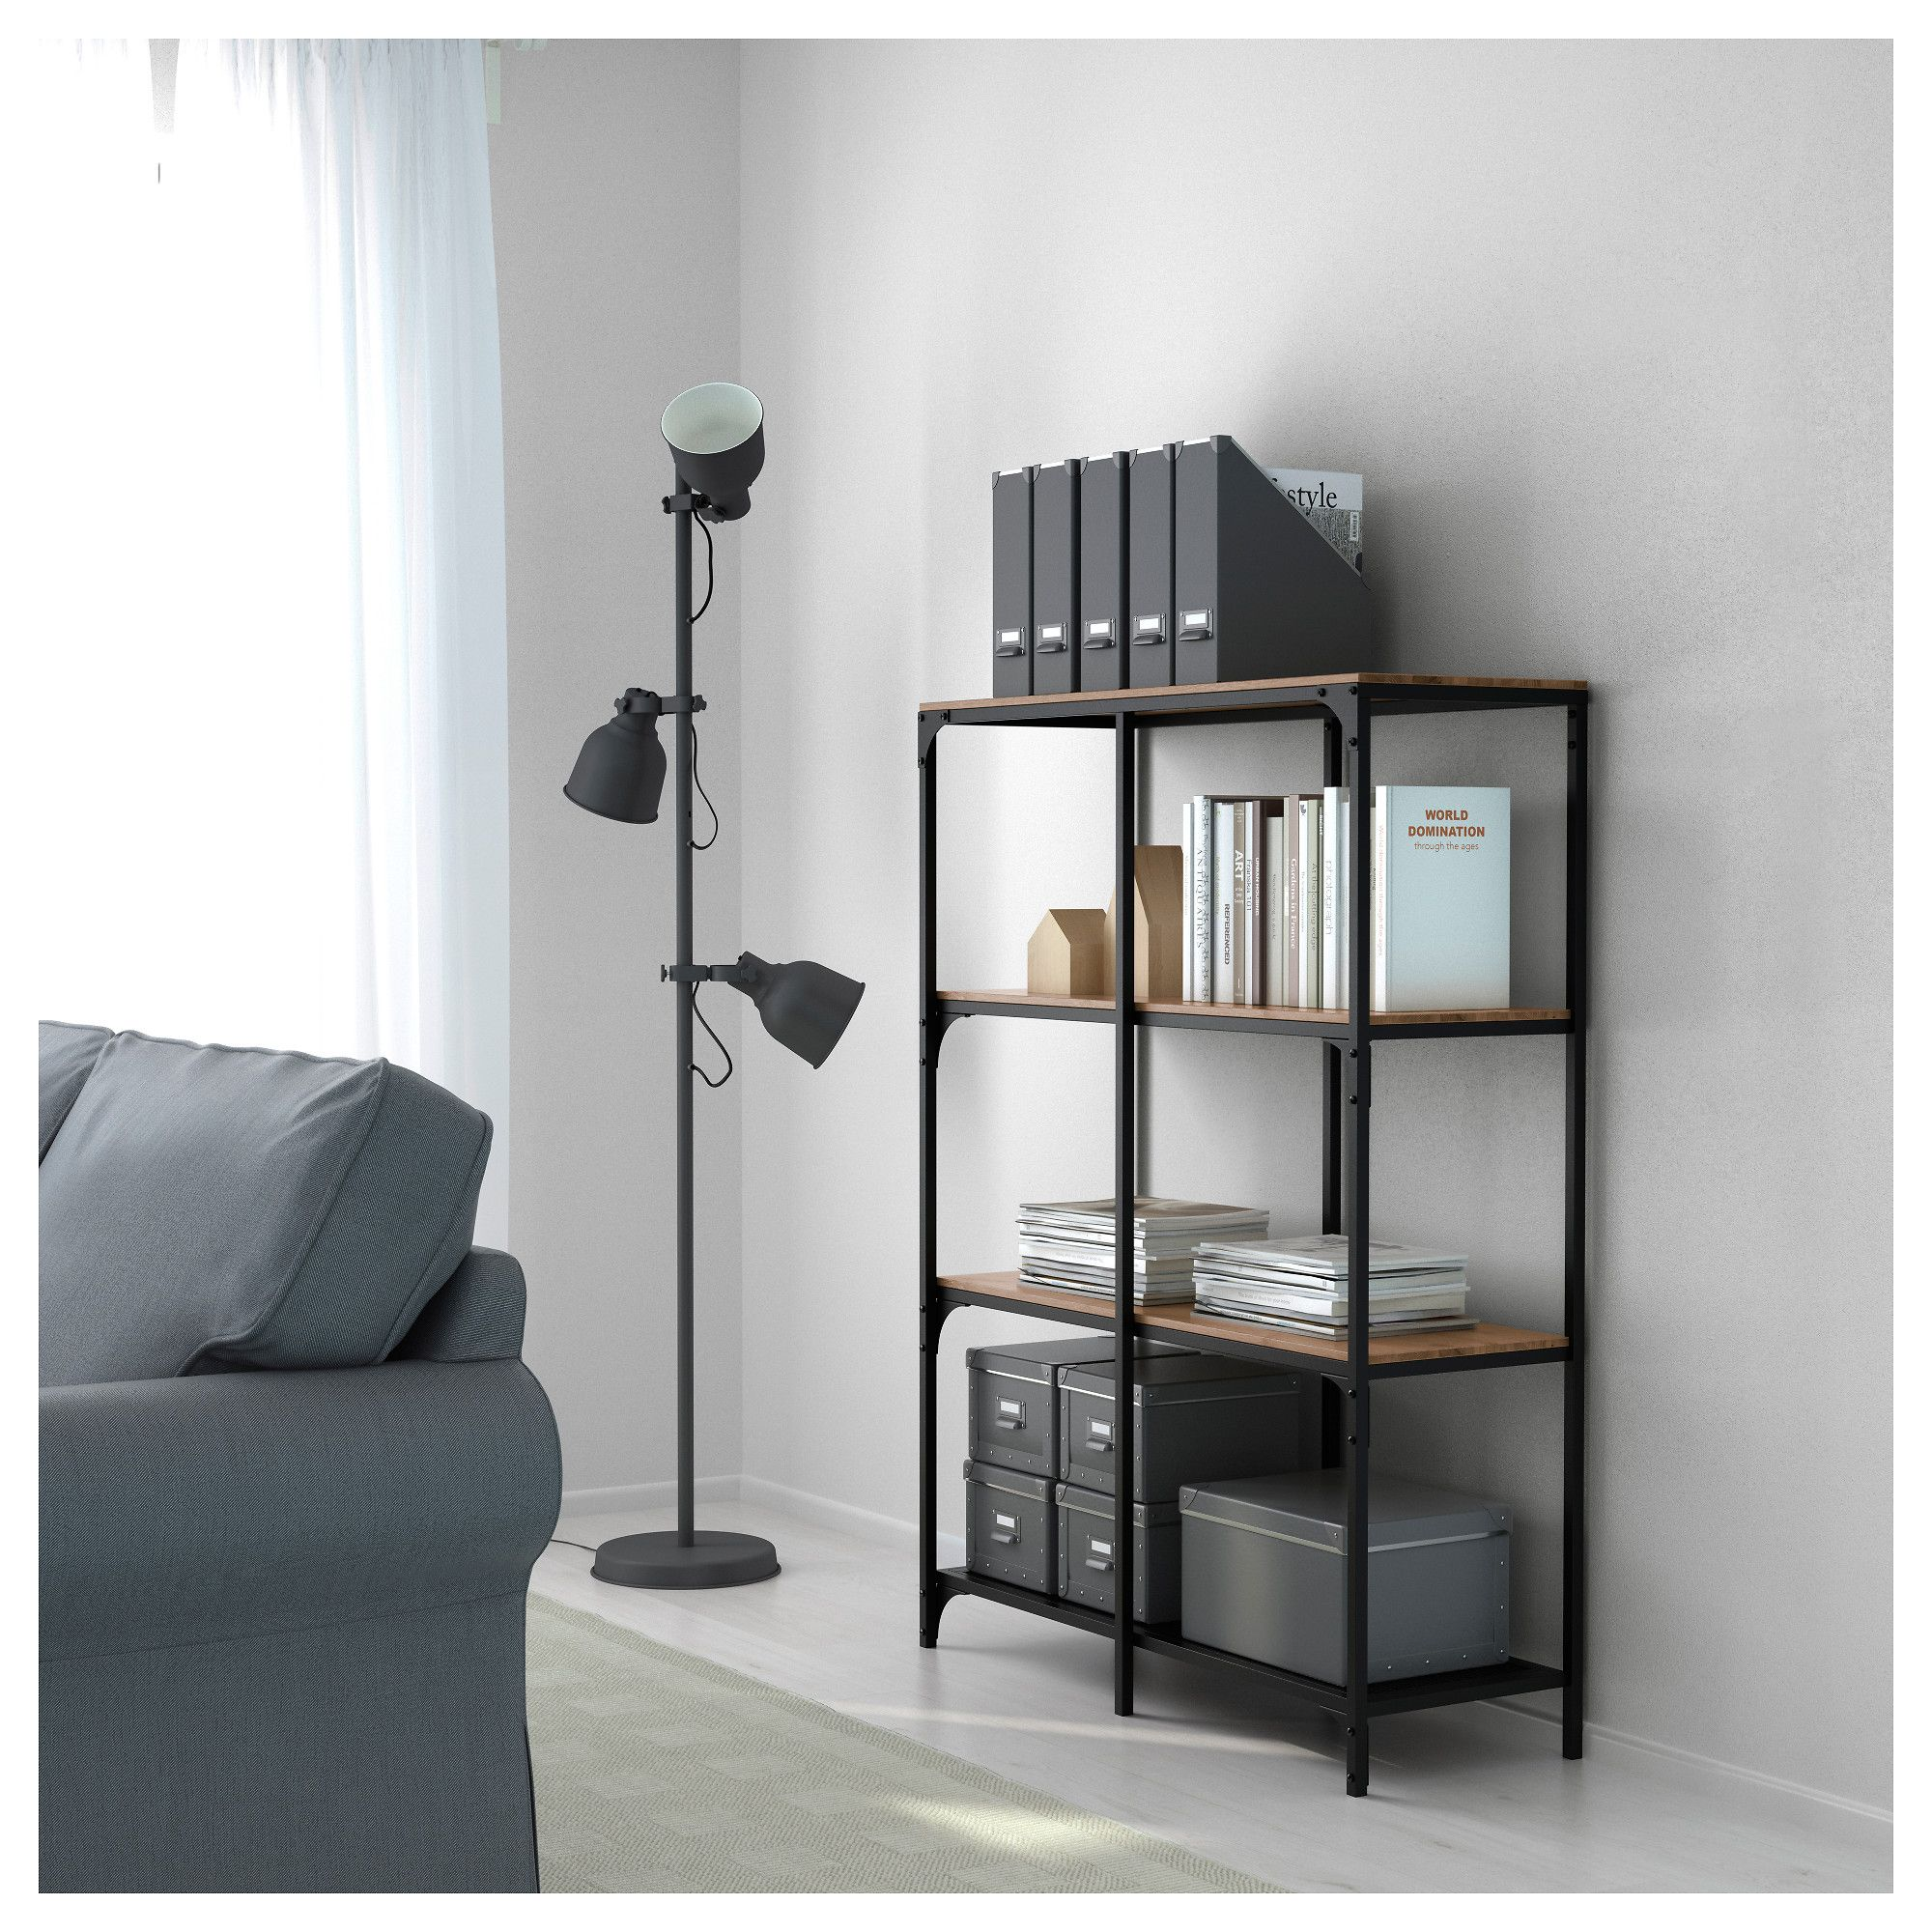 Ikea Hektar Lamp FjÄllbo Shelf Unit, Black | Ffe | Living Room Shelves